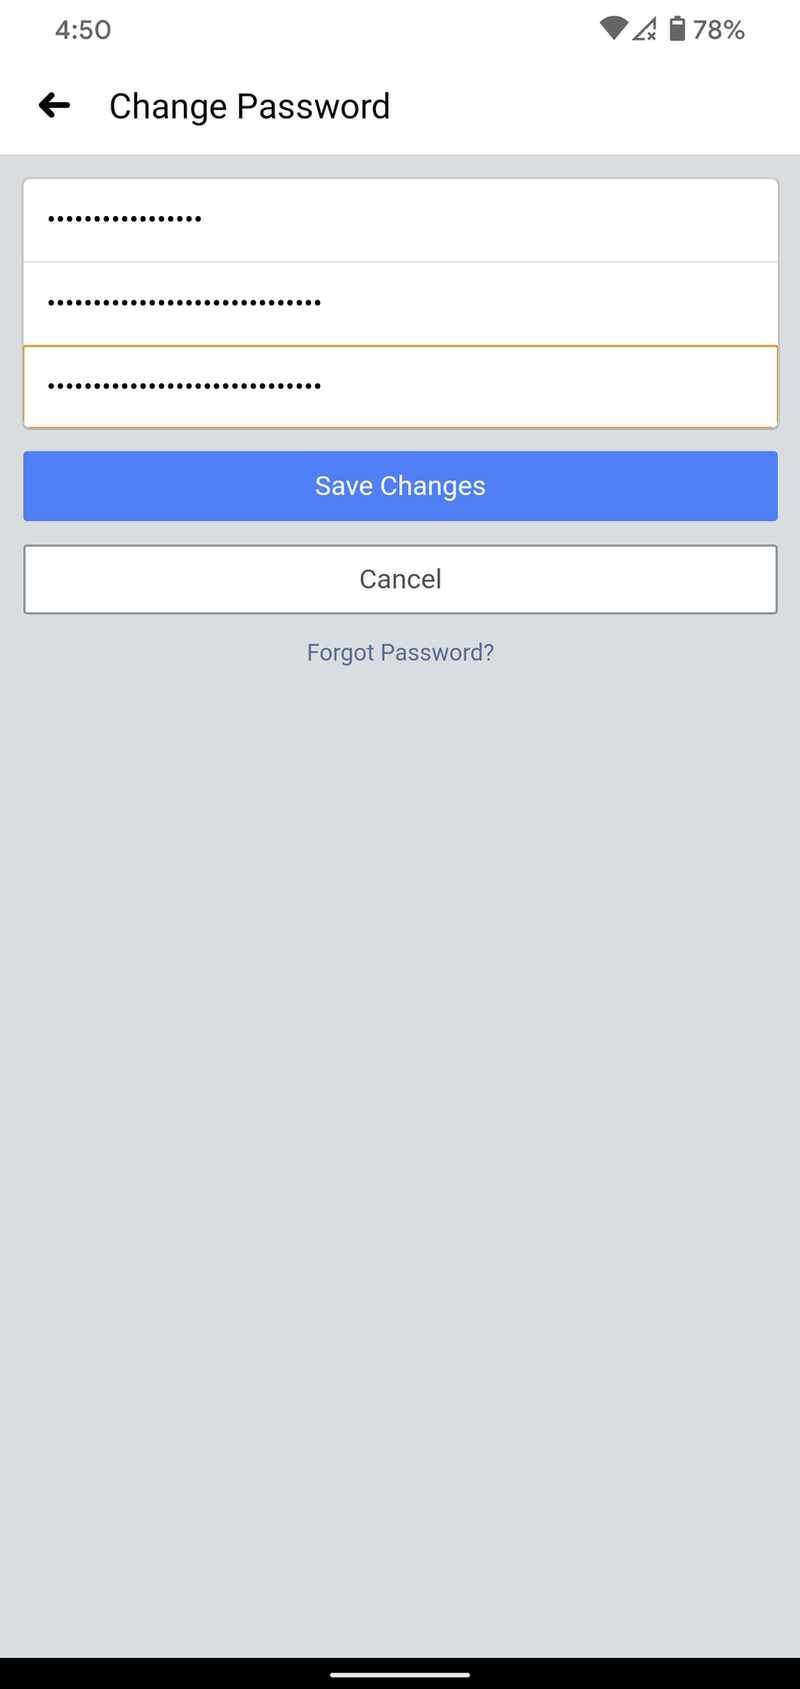 facebook-change-password-how-to-7.png?it